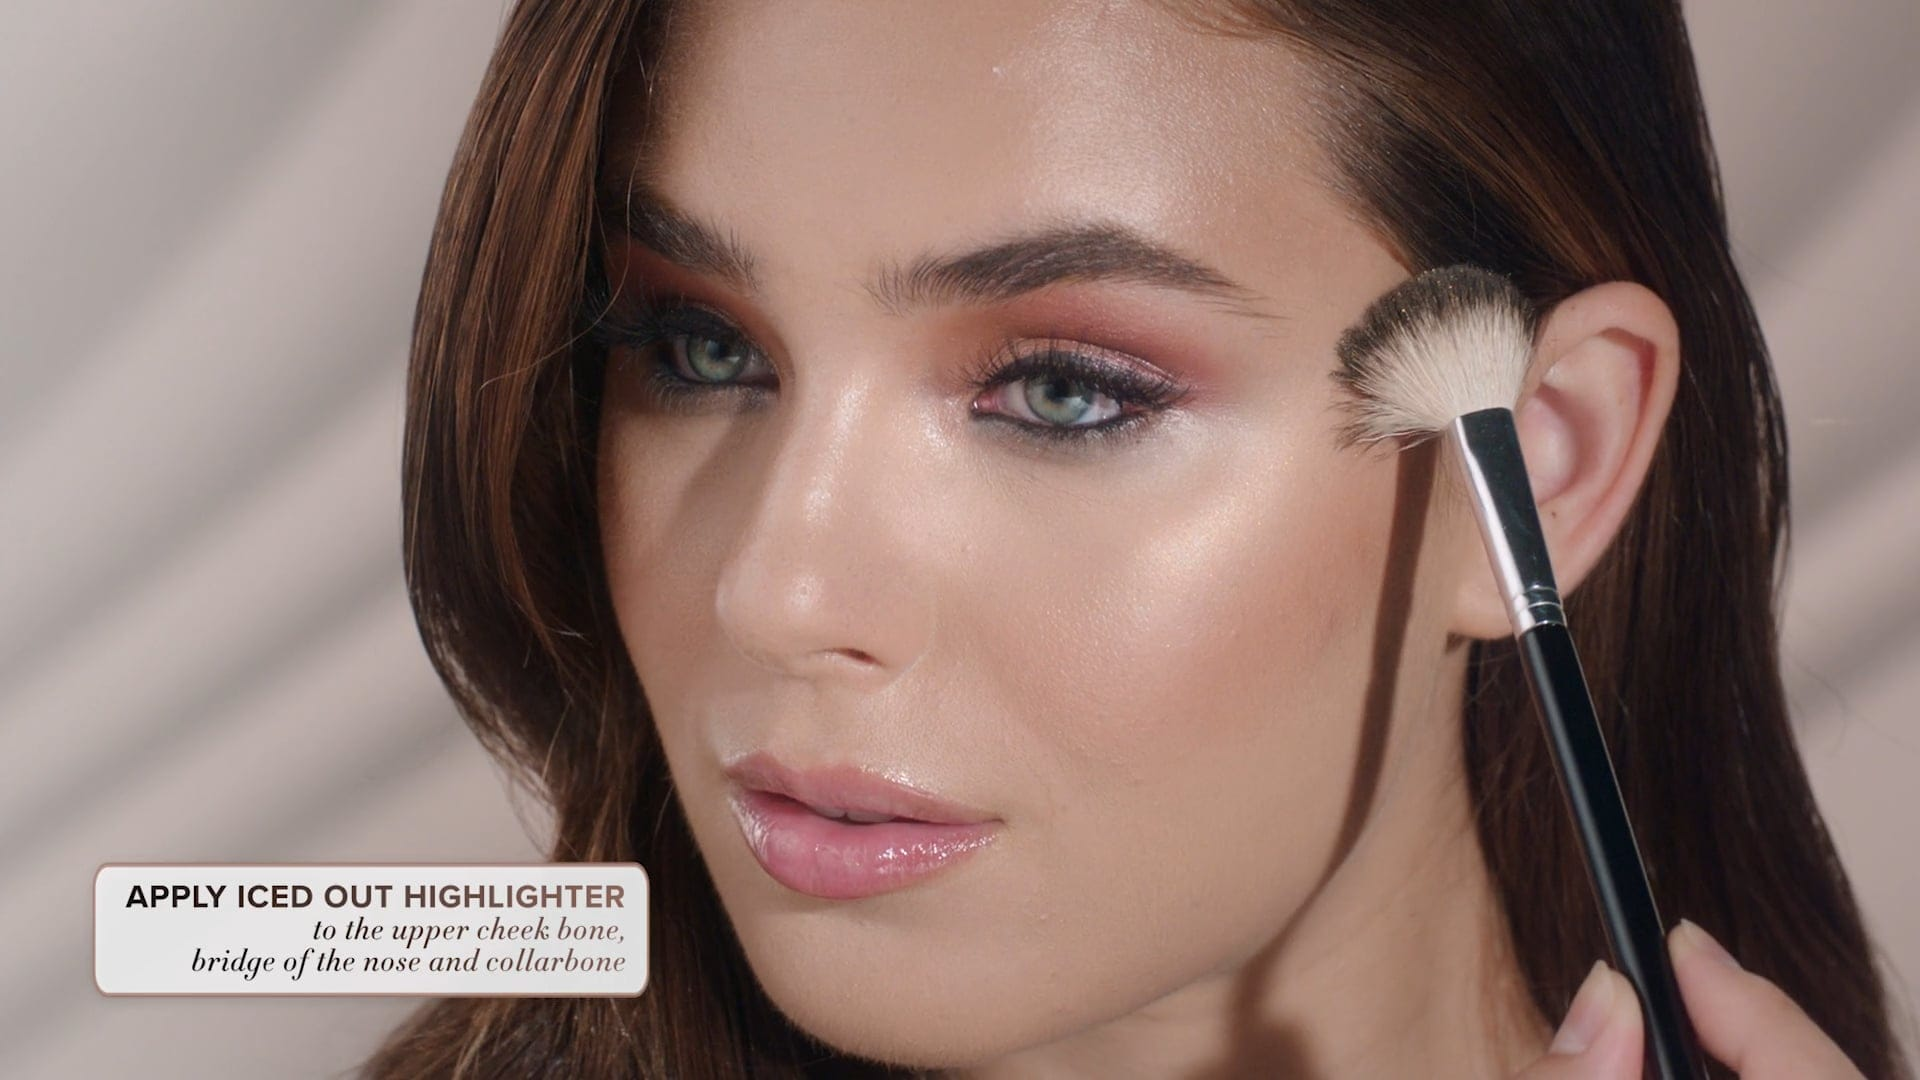 Iced Out Highlighter - How To Apply 03